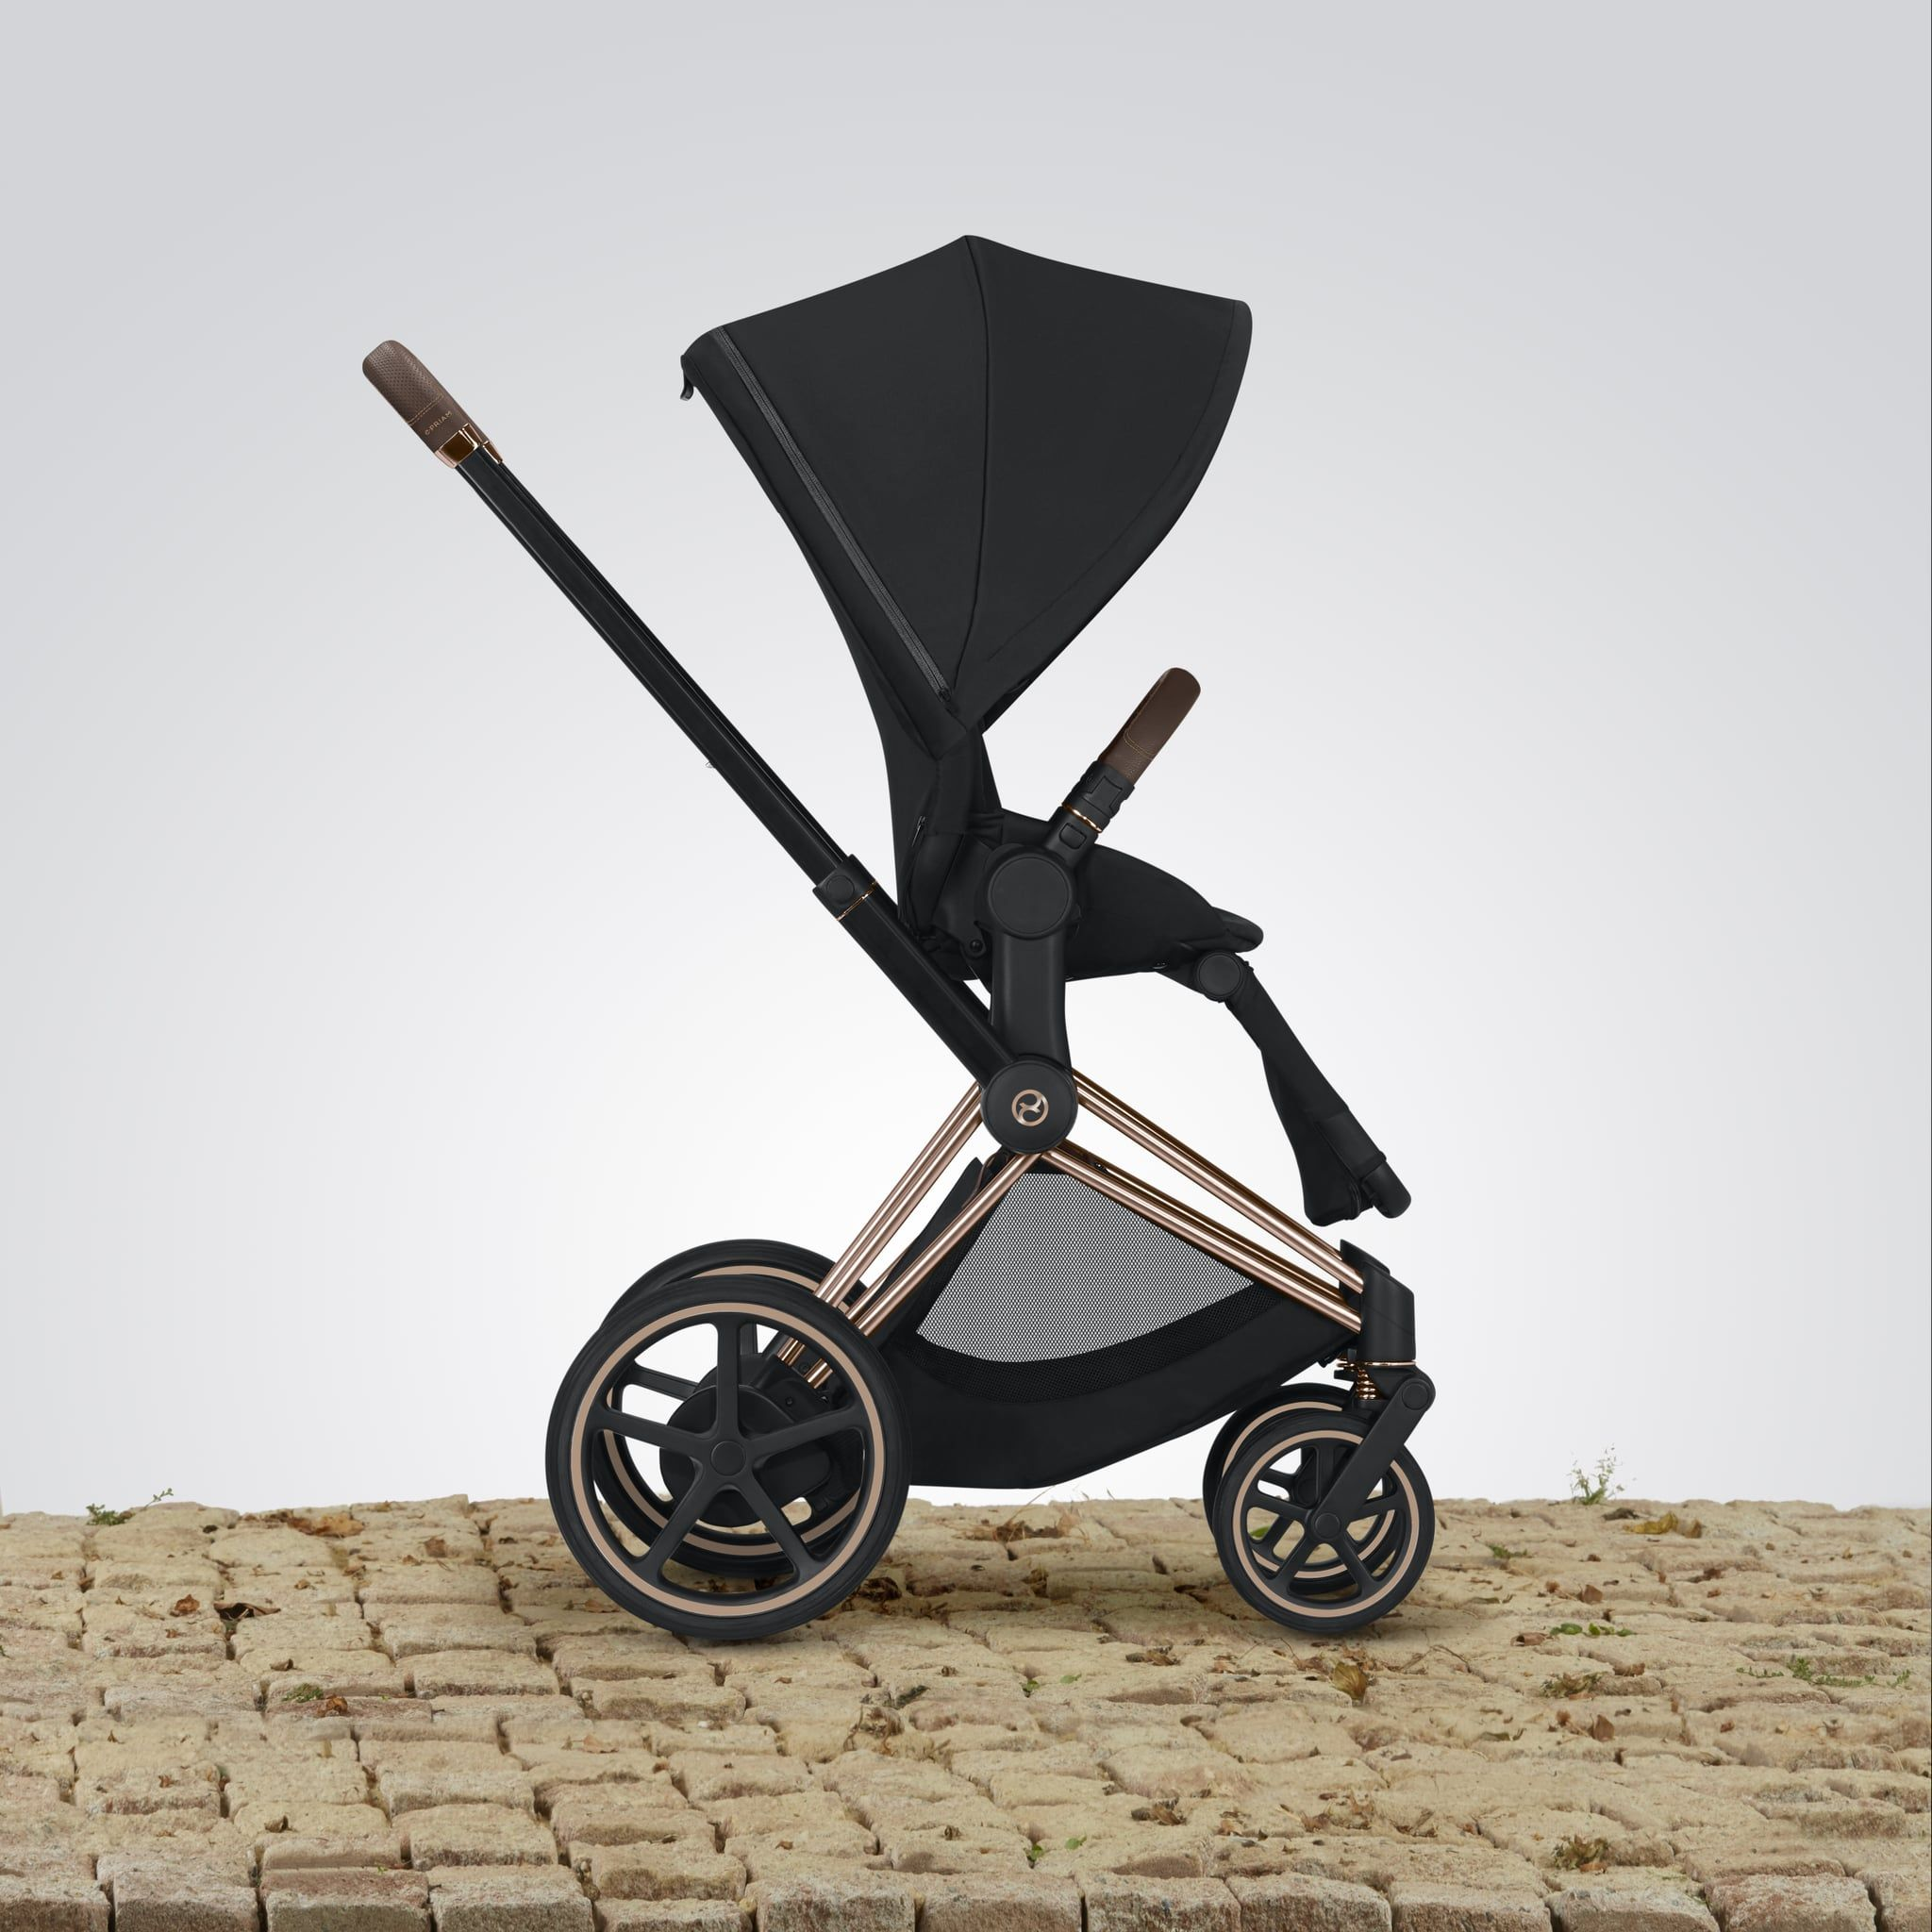 Cybex ePRIAM Stroller New baby products, Baby gear